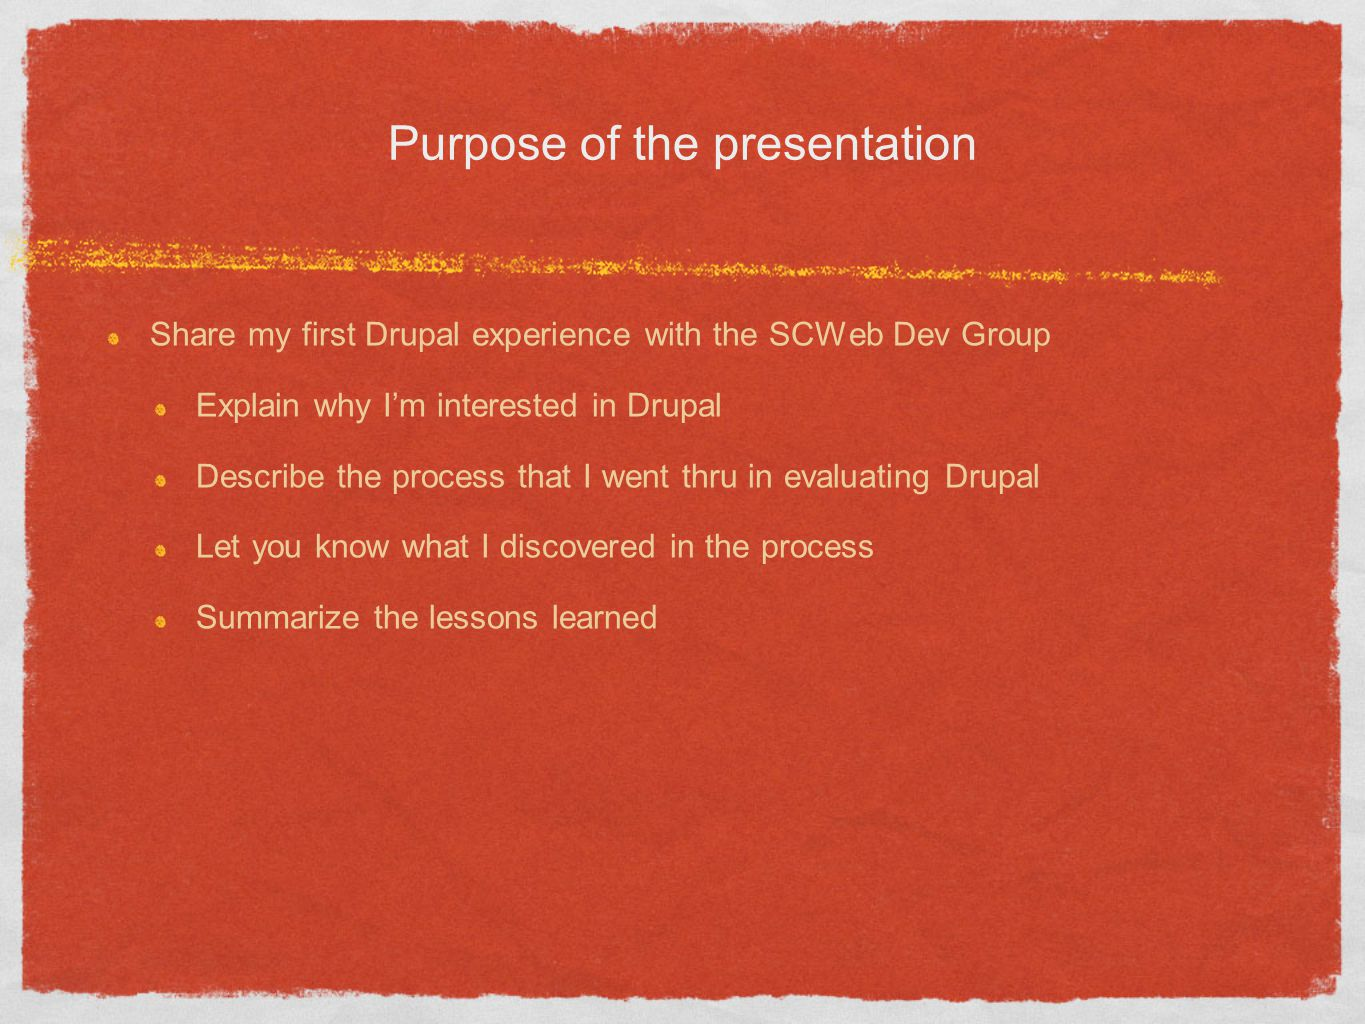 Purpose of the presentation Share my first Drupal experience with the SCWeb Dev Group Explain why Im interested in Drupal Describe the process that I